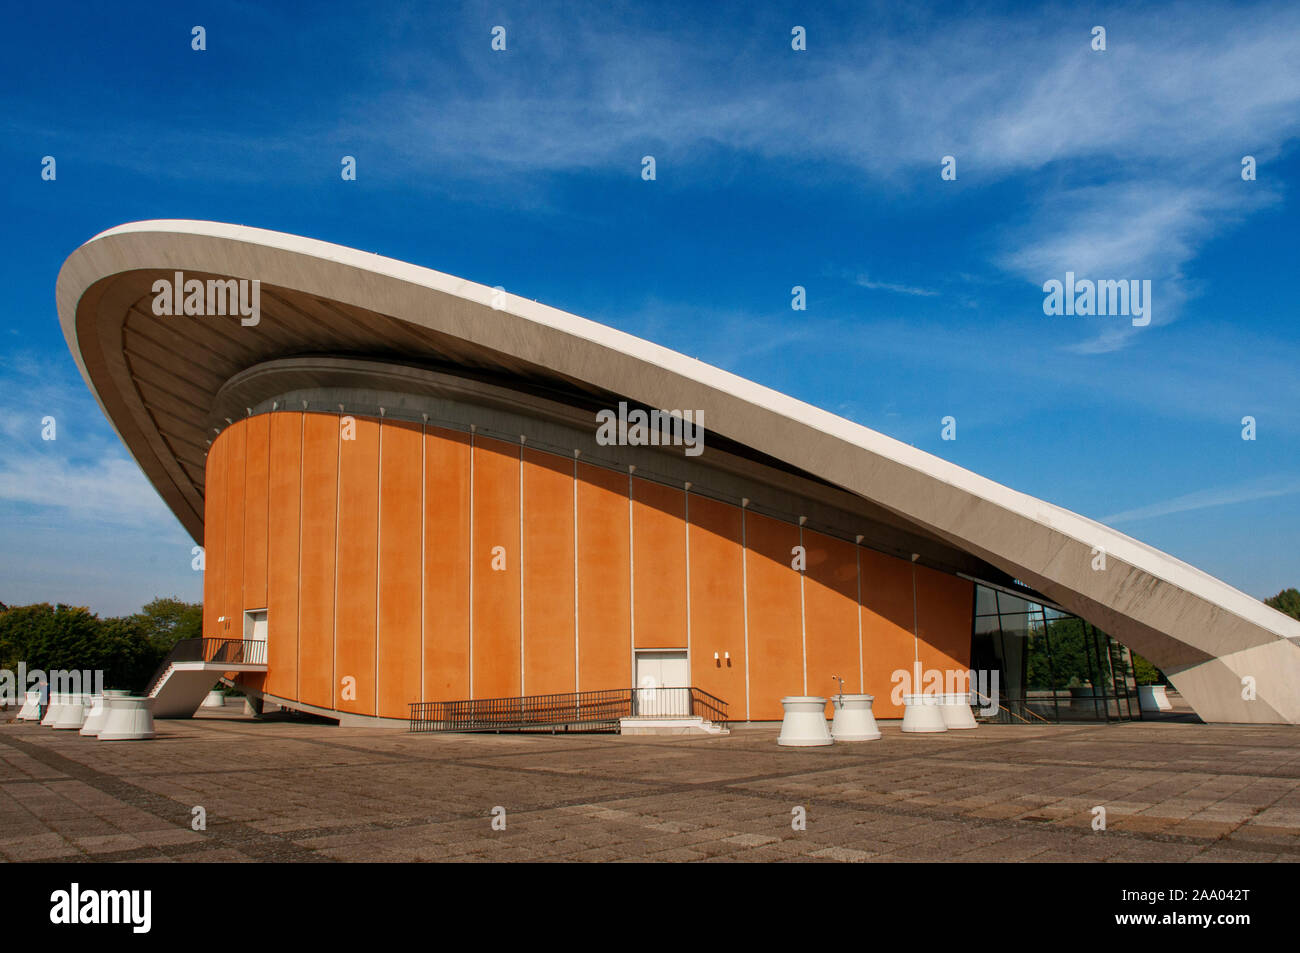 Haus der Kulturen der Welt House of World Cultures in Berlin Germany. The Congress Hall is the Haus der Kulturen der Welt. Germany, Capitol Berlin, Di Stock Photo